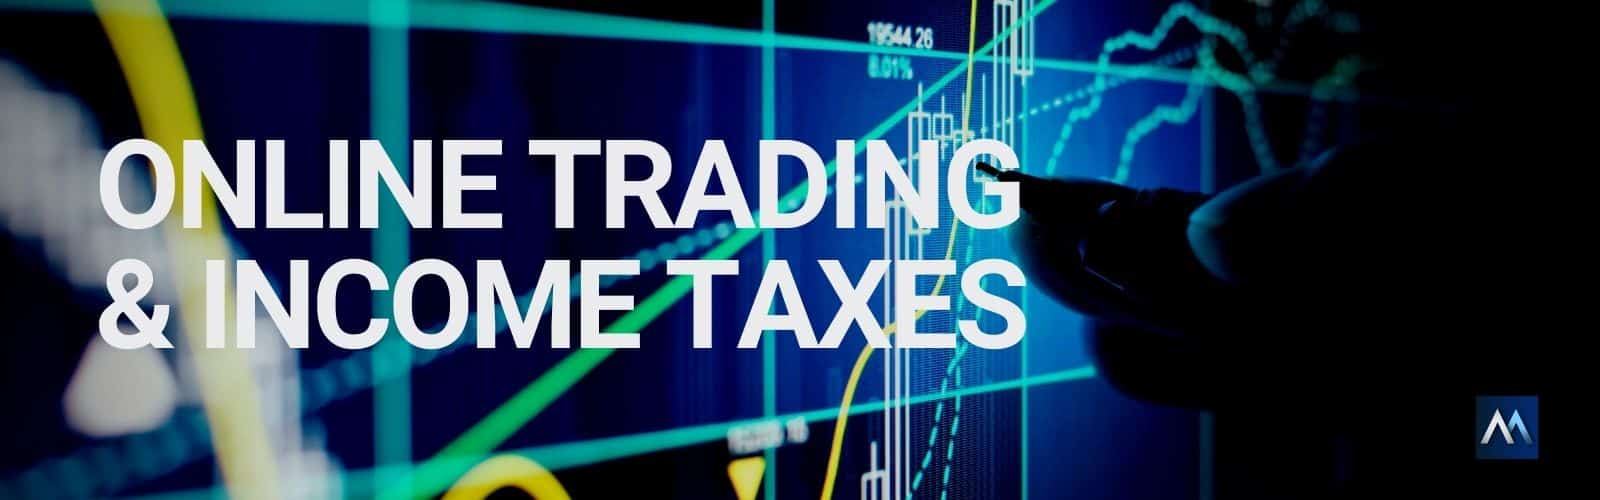 Where to classify my stock trading on my personal income tax return in Canada